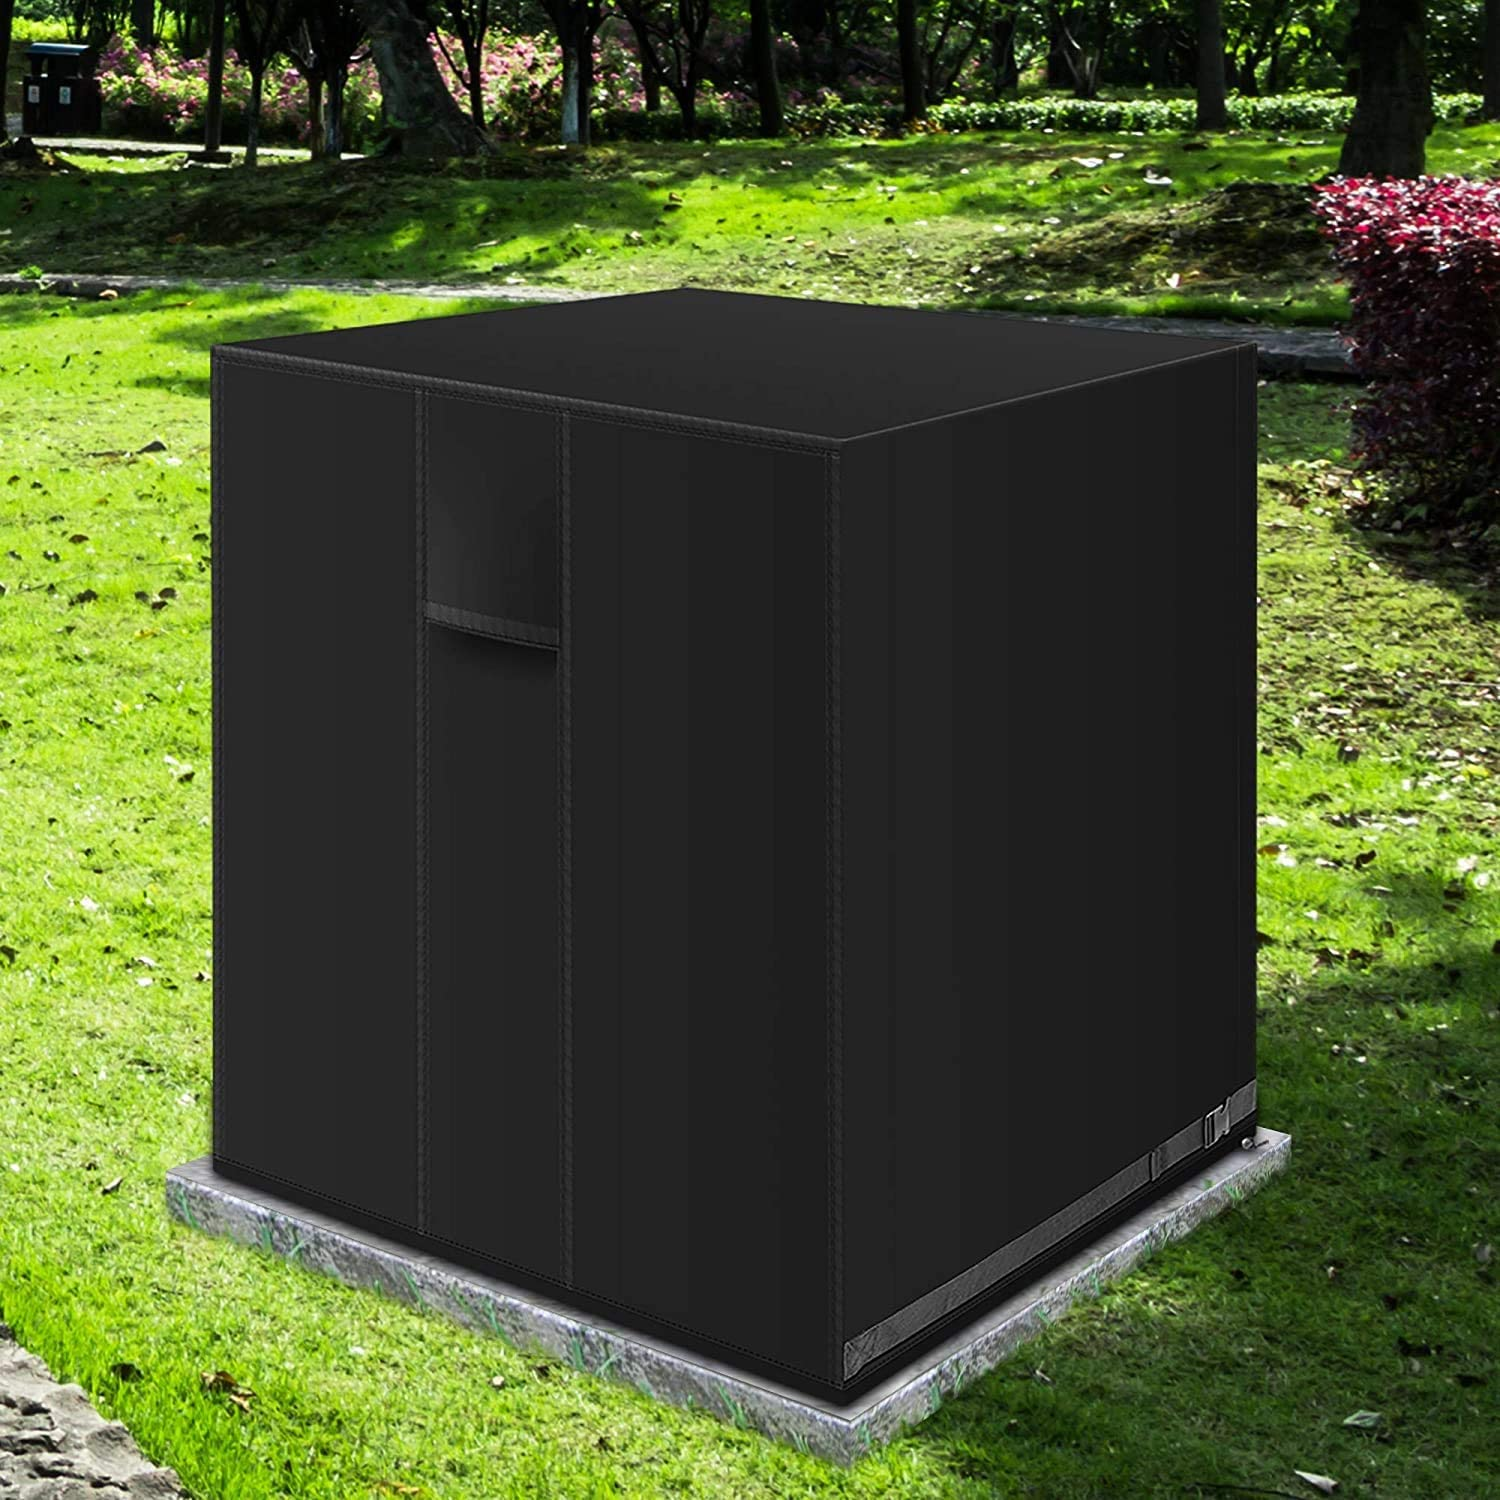 IPHUNGO Square Central Air Conditioner Cover, Durable Waterproof Breathable TPU Coating, Central AC Unit Covers for Outdoor Protection (24''x 24'' x 30'', Black)